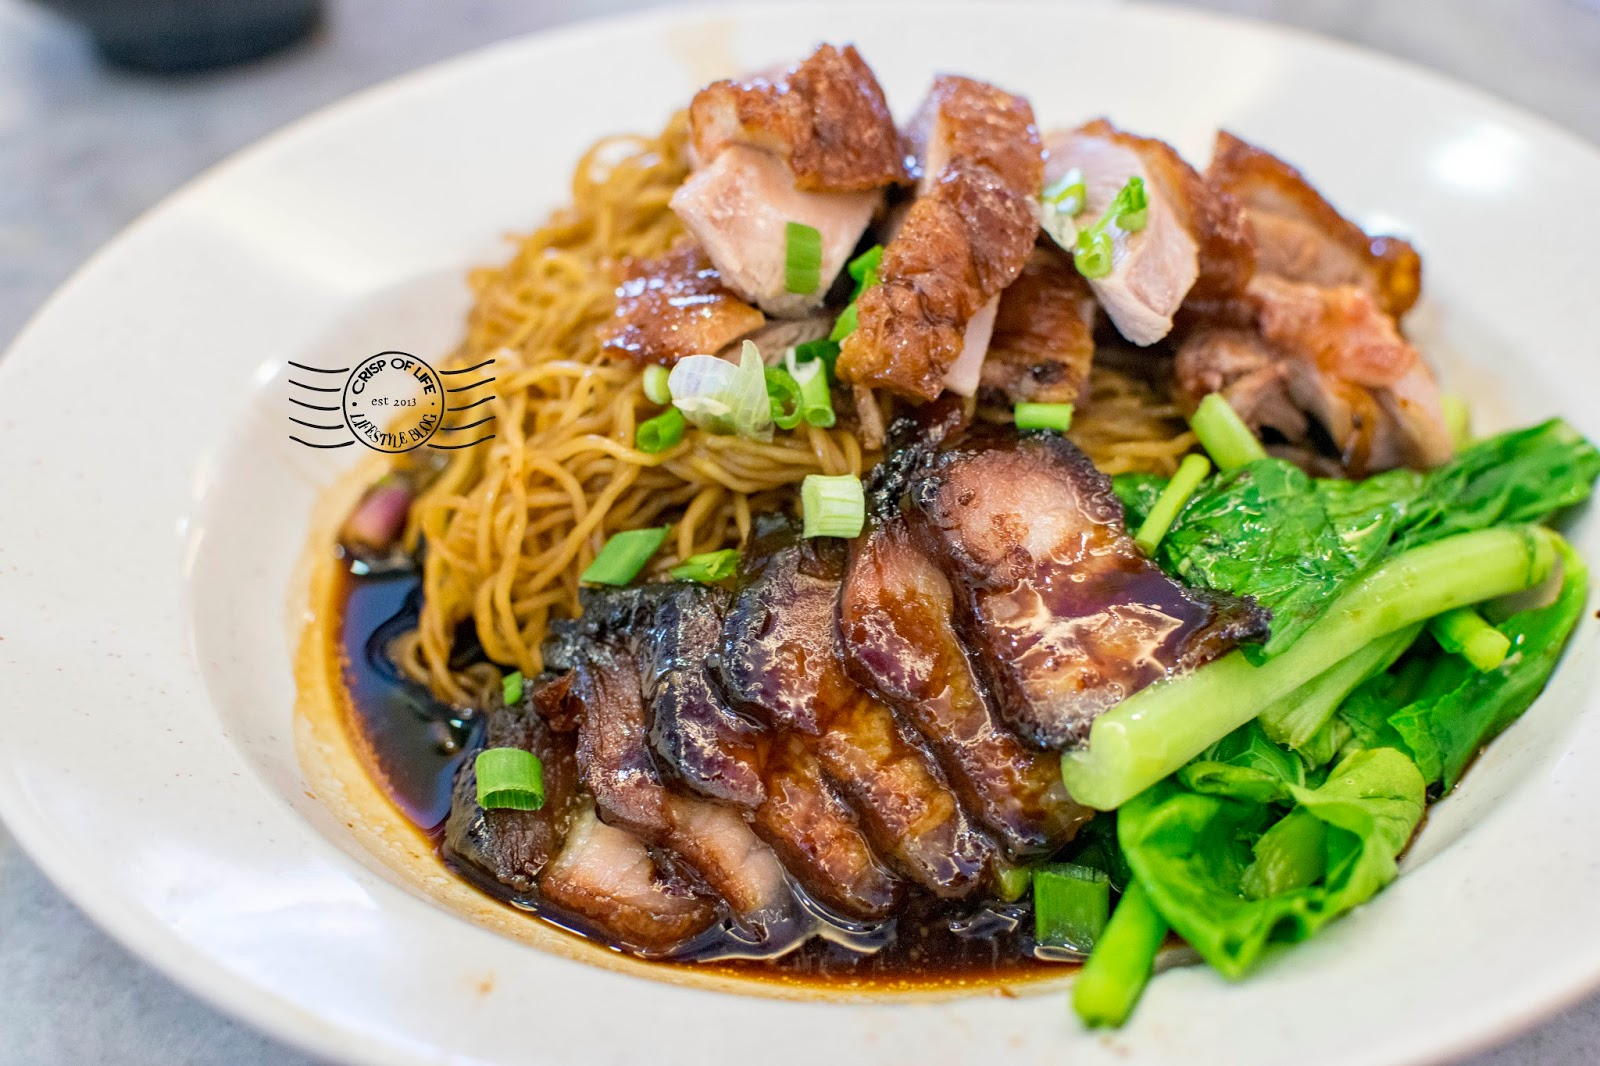 Dim sum and noodle eatery in Setia Alam, Selangor Zok Noodle House